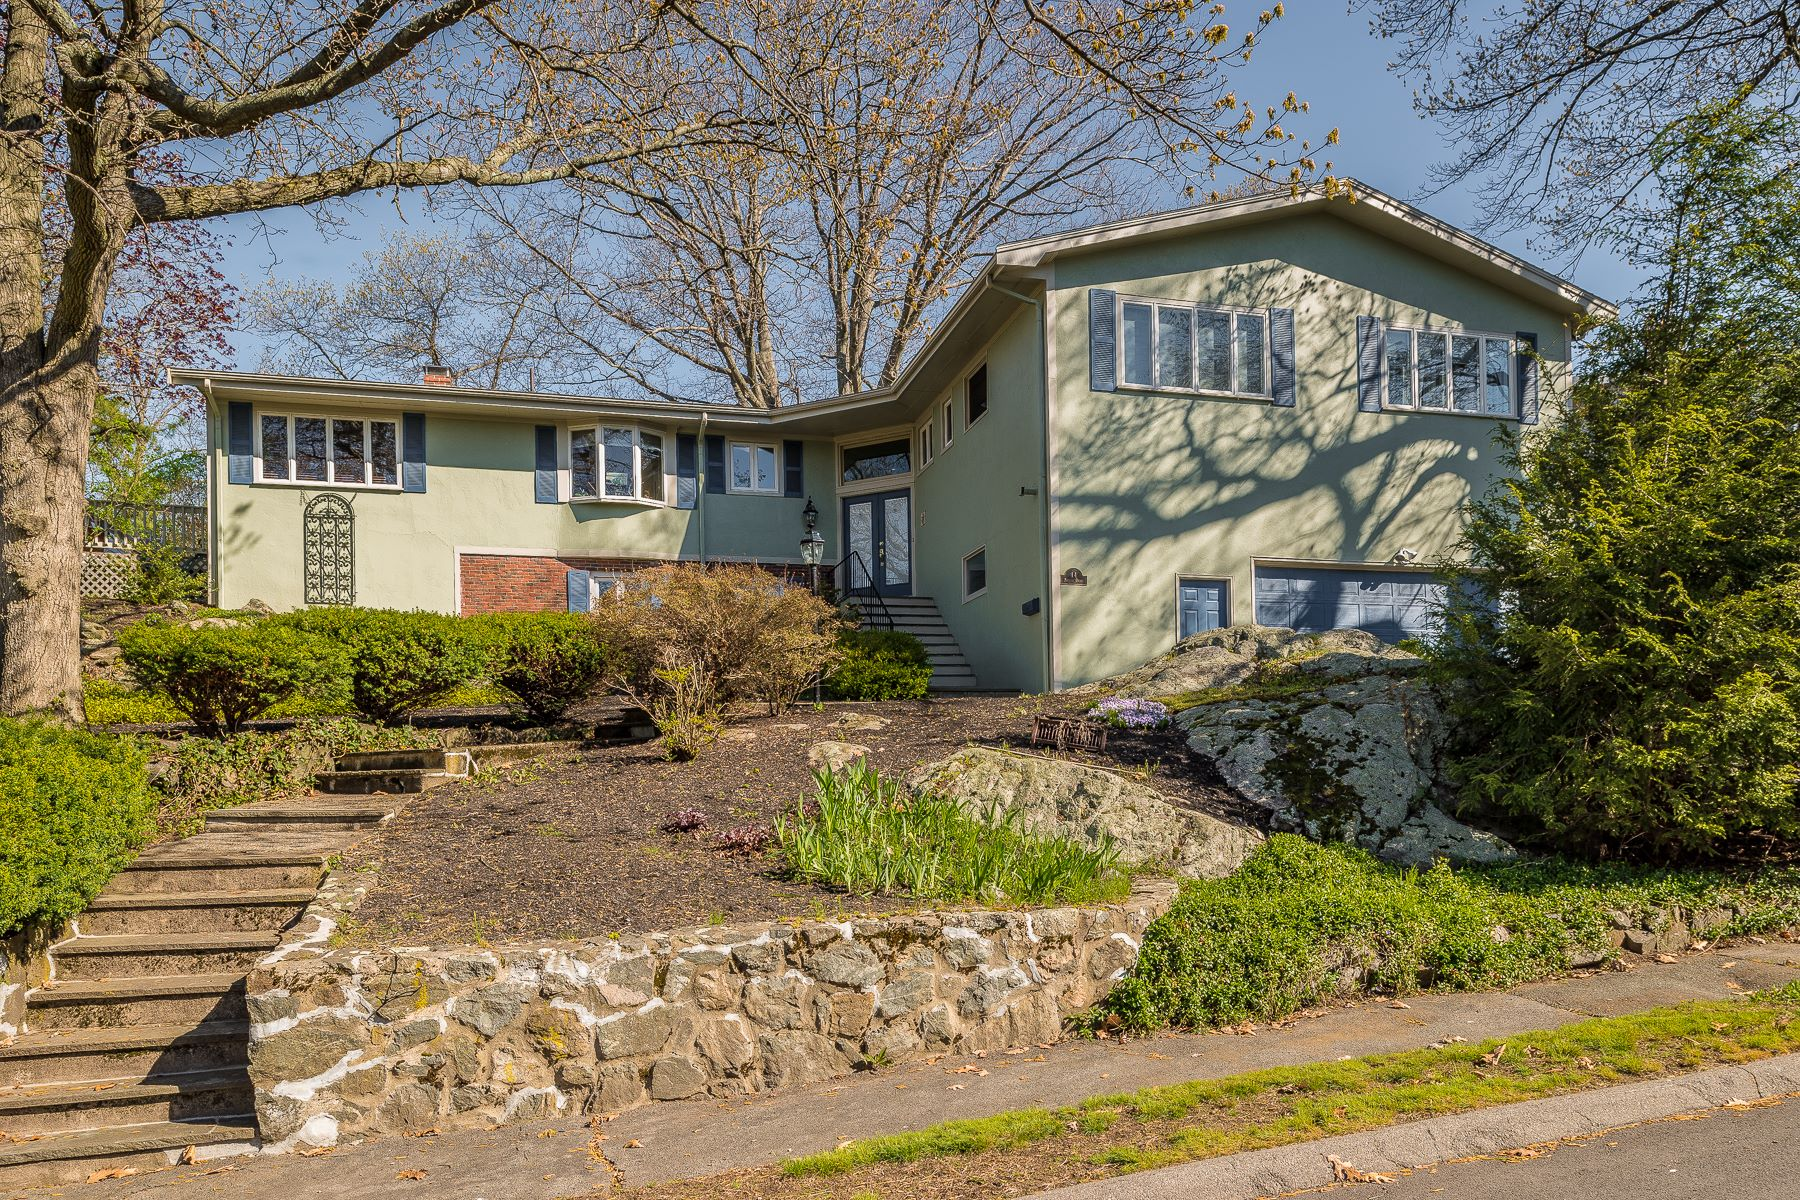 Single Family Home for Sale at Large Contemporary on a Secluded Street 14 Parsons Drive Swampscott, Massachusetts, 01907 United States